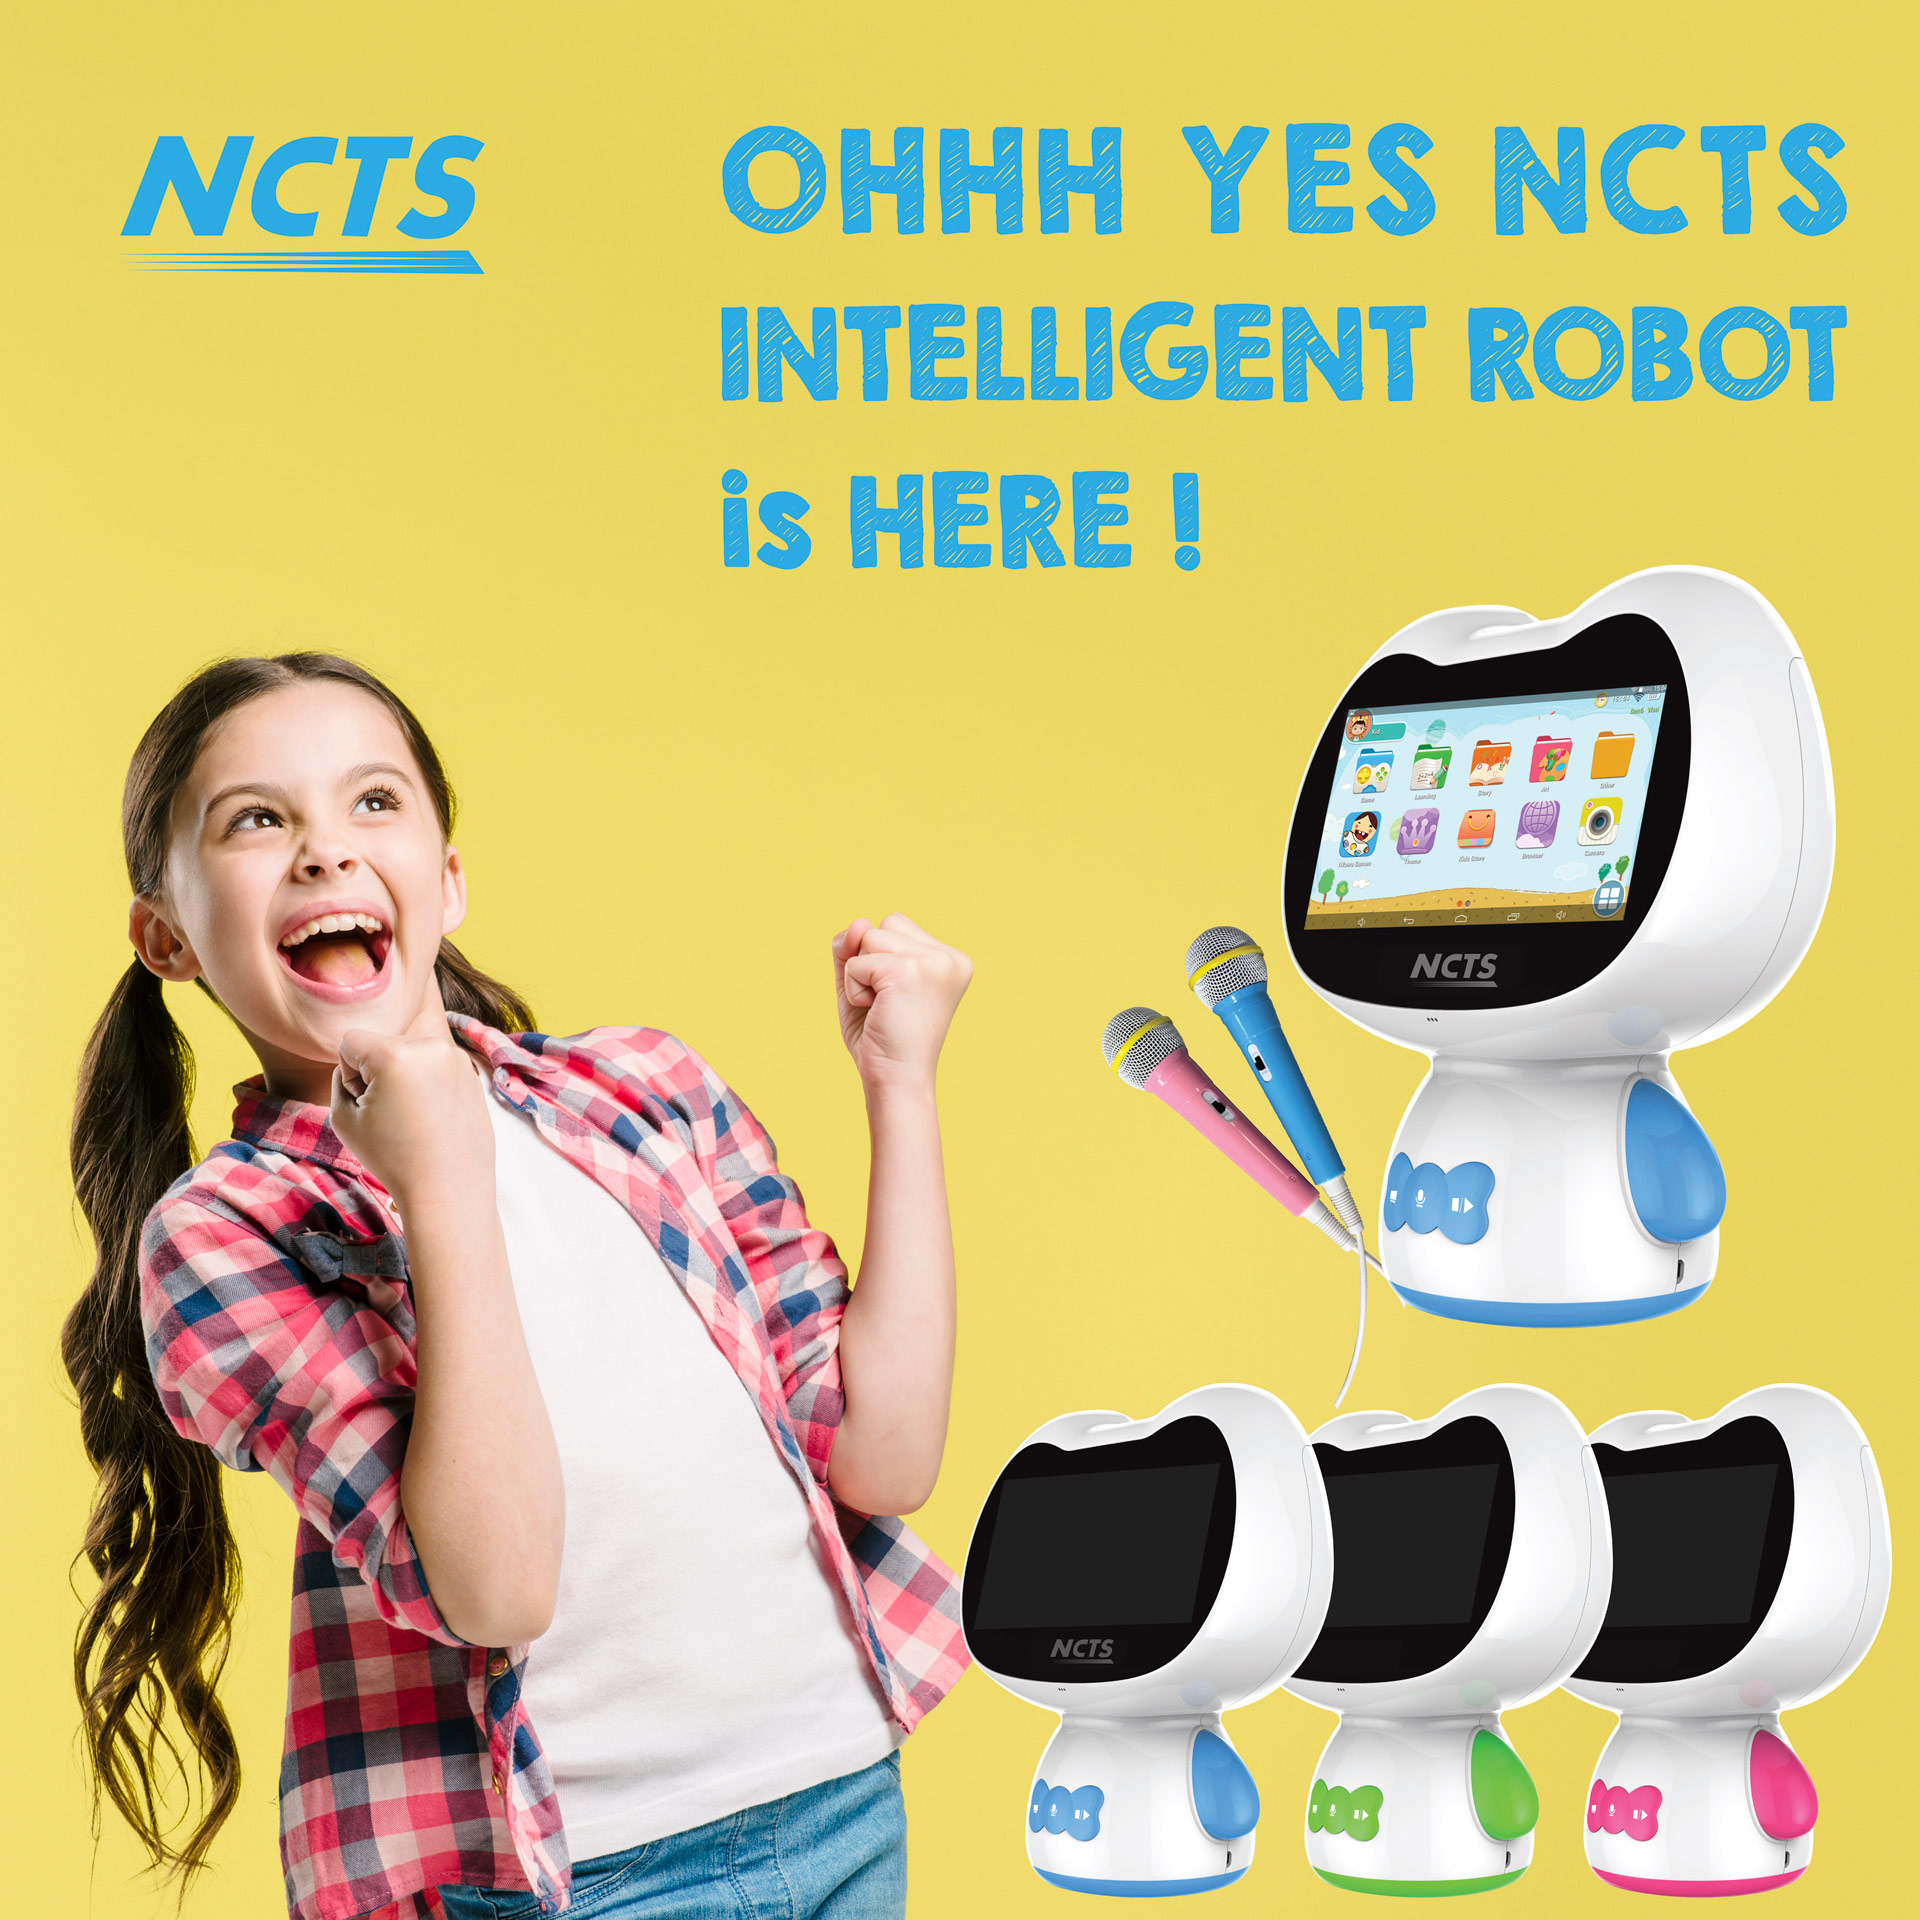 NCTS INTELLIGENT ROBOT